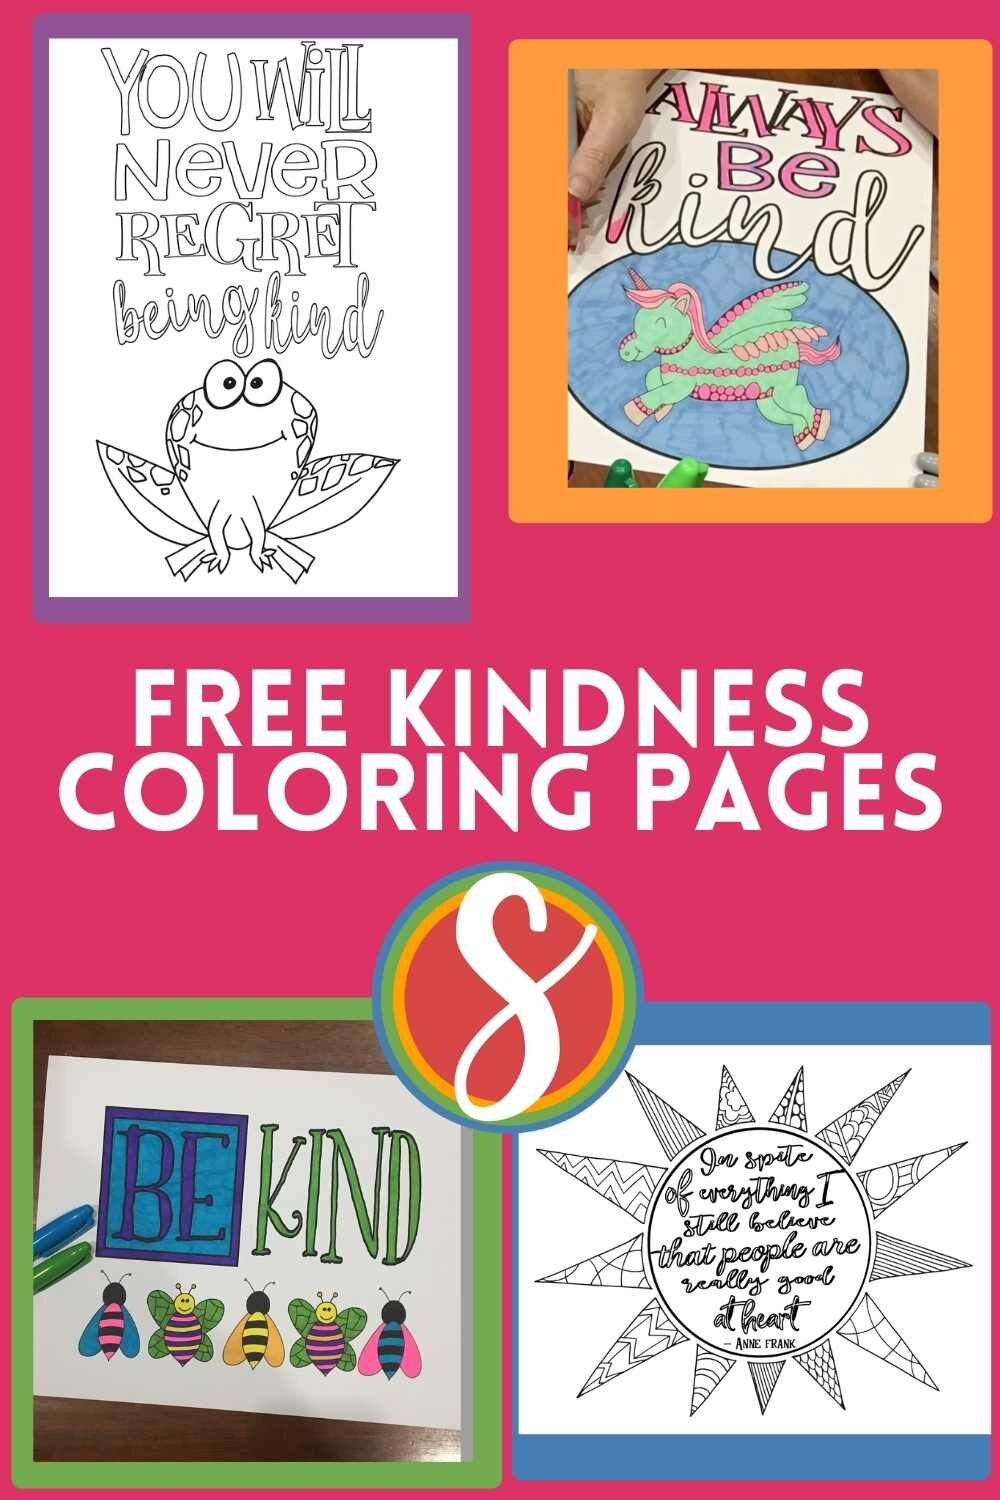 12 Free Coloring Pages About Kindness Stevie Doodles Free Printable Coloring Pages